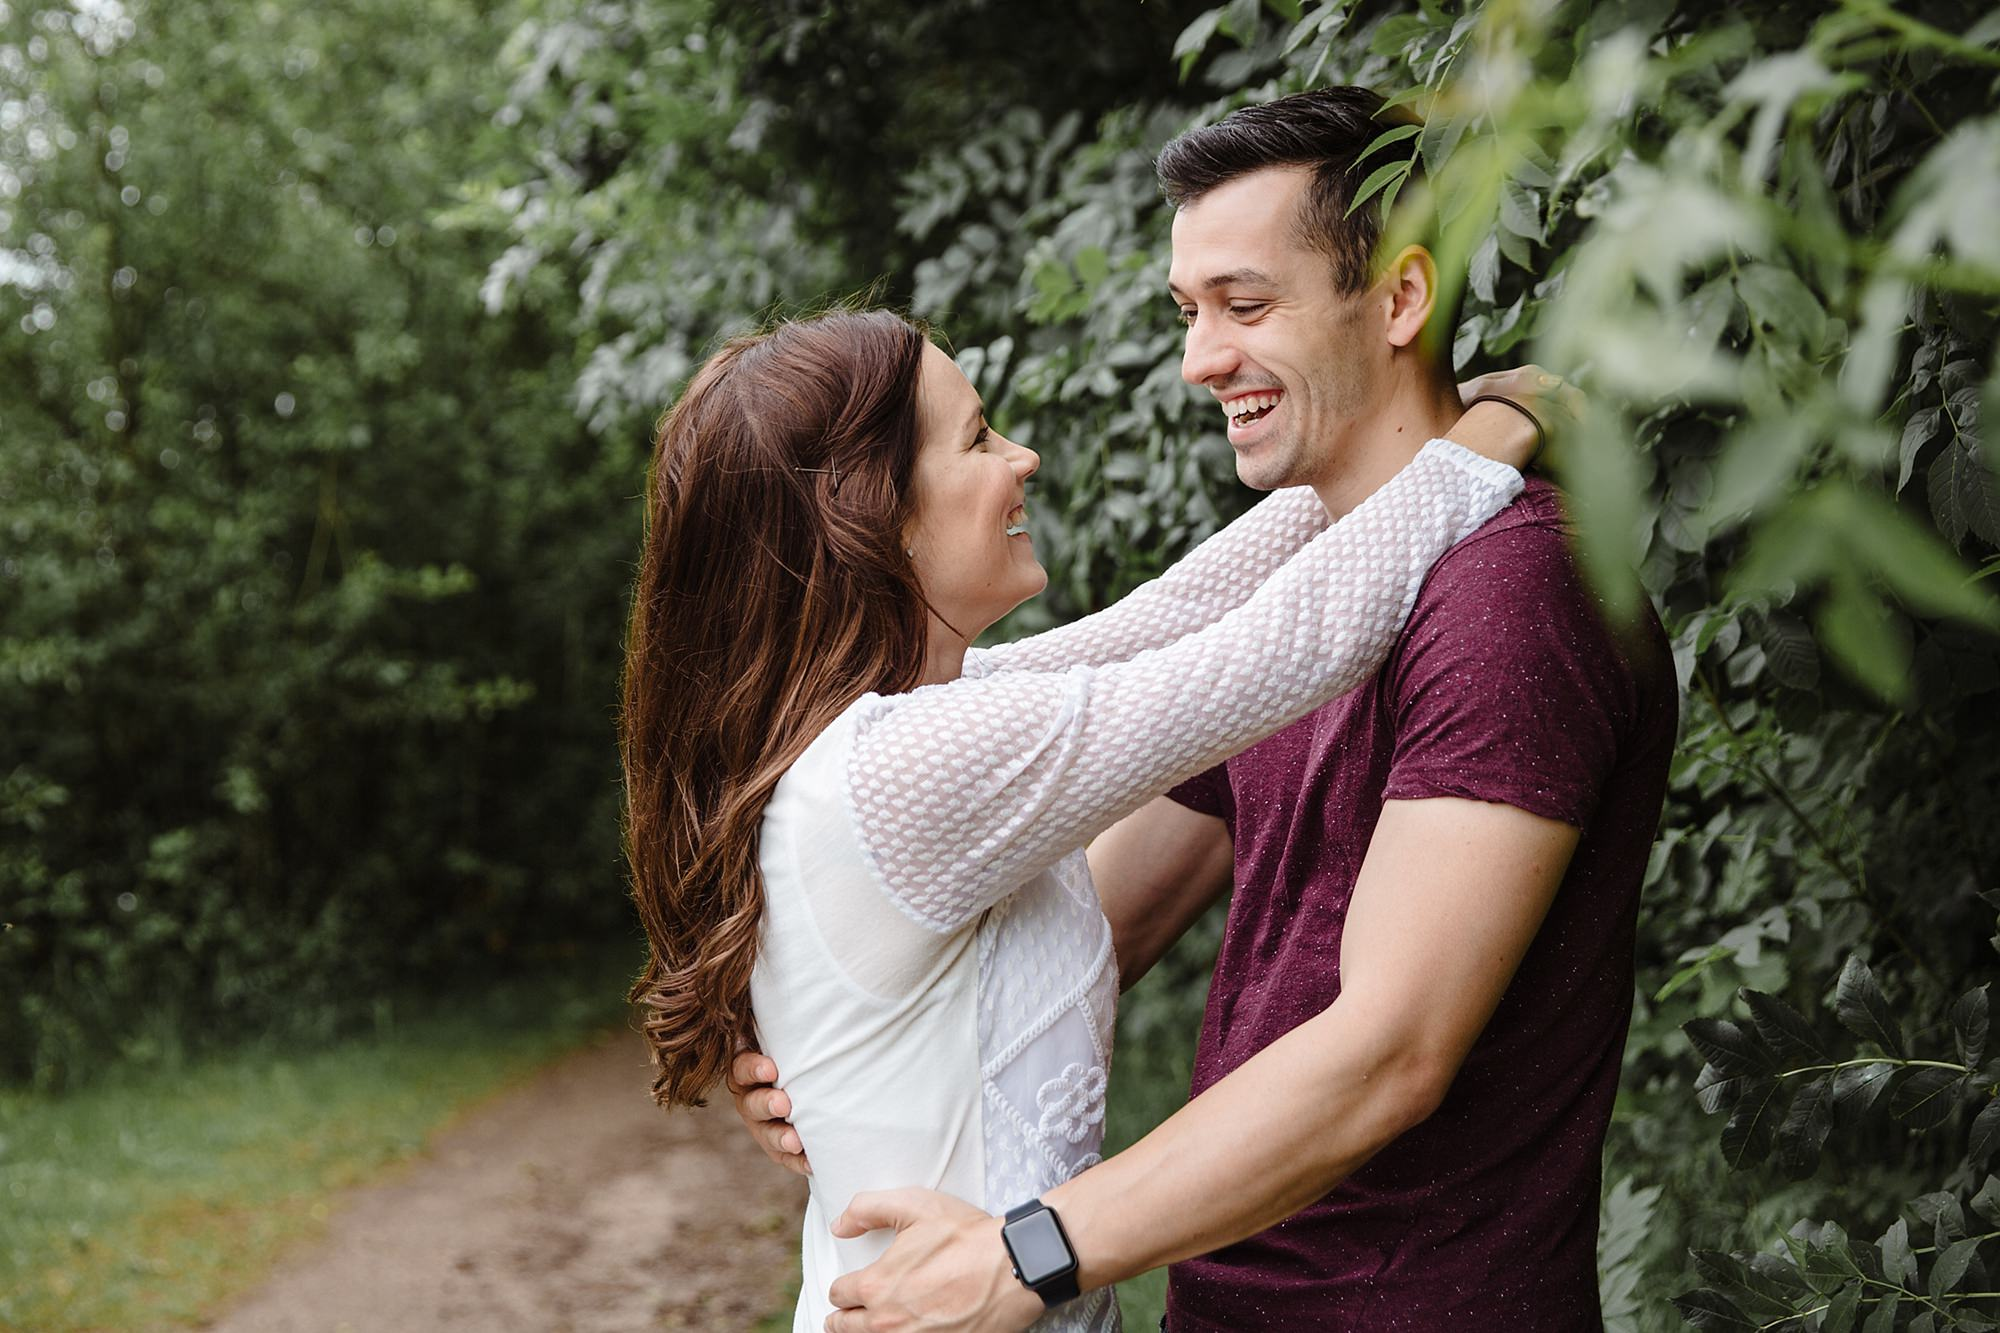 Countryside engagement photography in loughborough